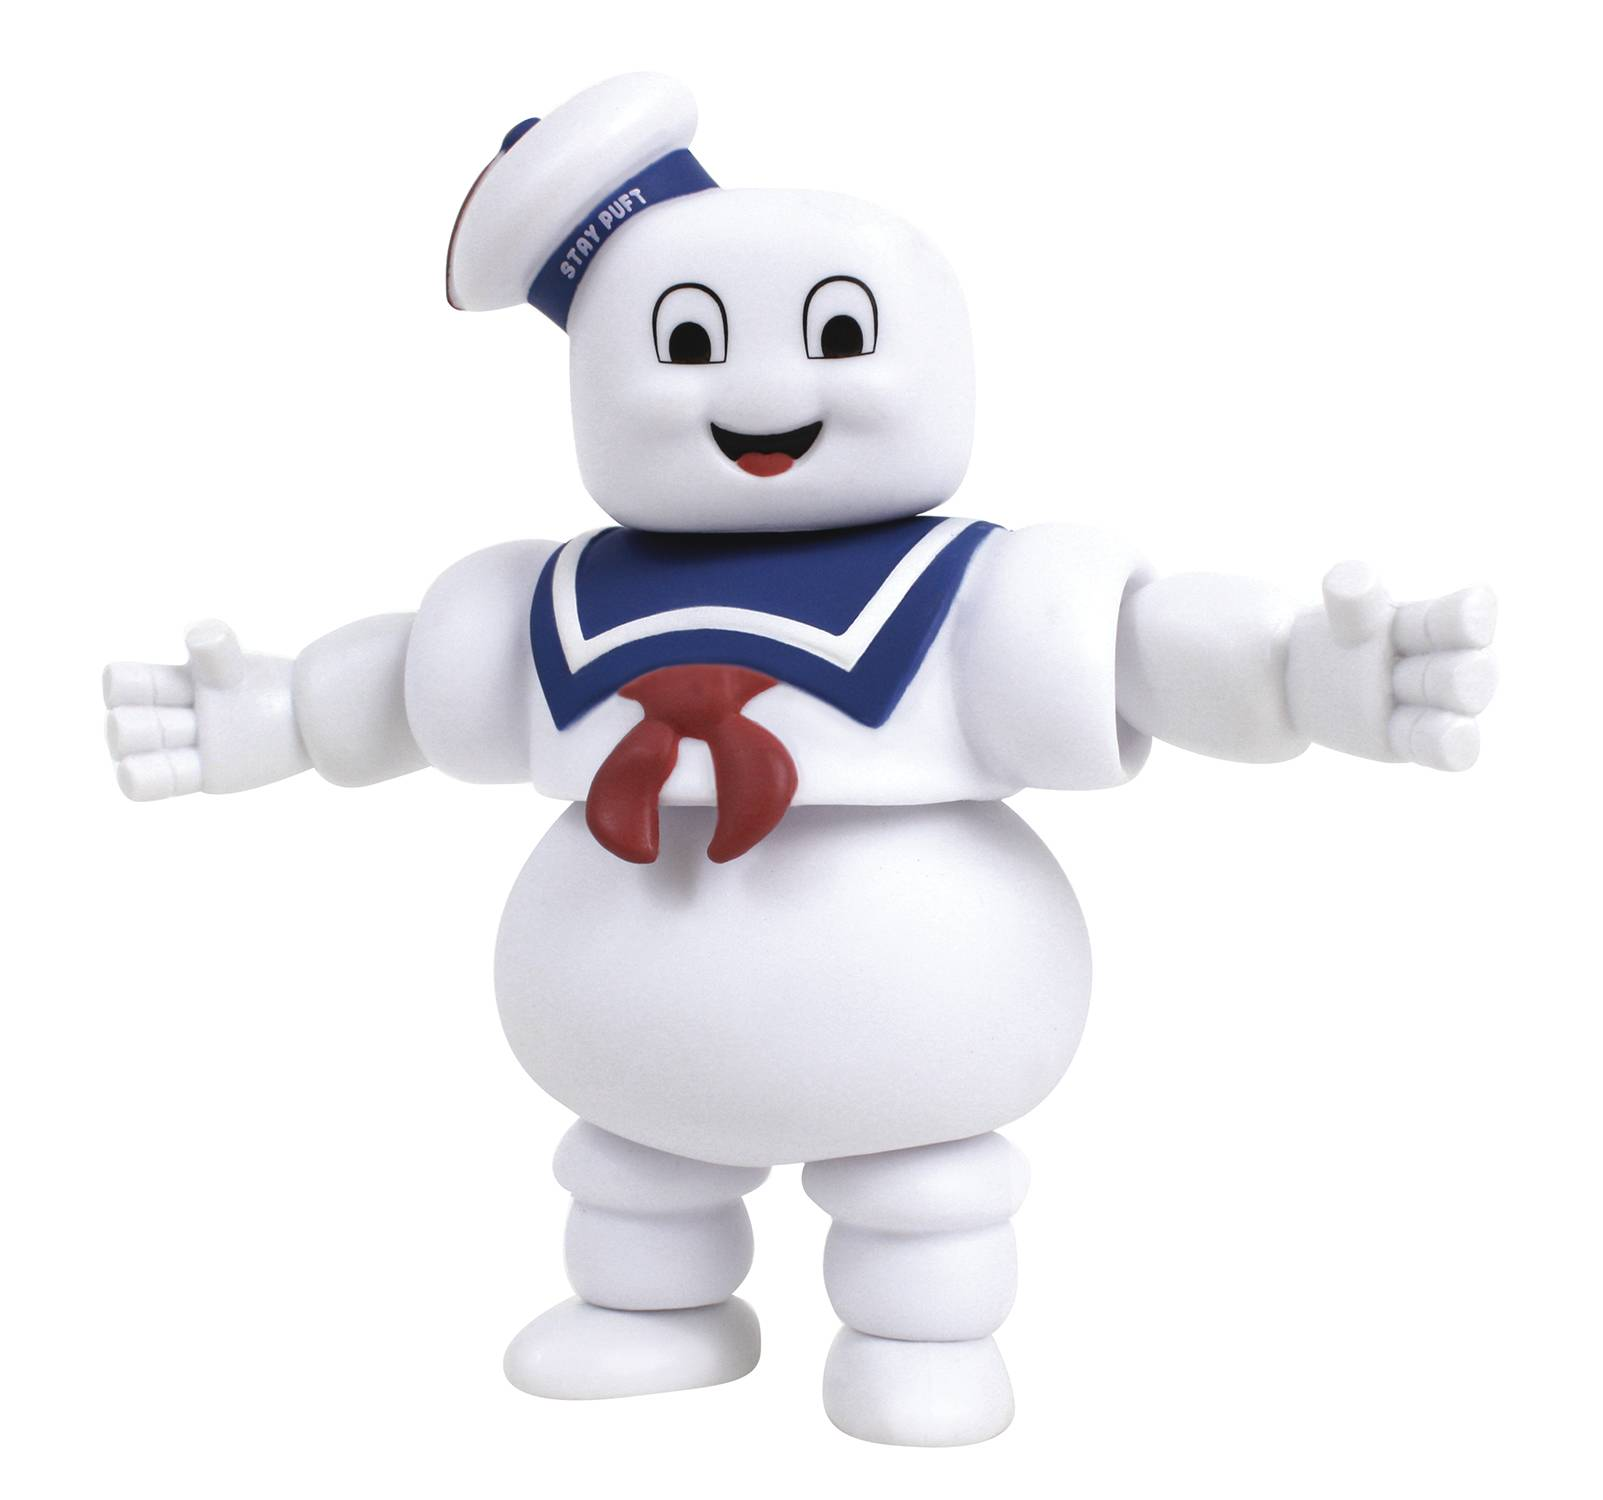 TLS X GHOSTBUSTERS STAY PUFT MARSHMALLOW MAN FIG